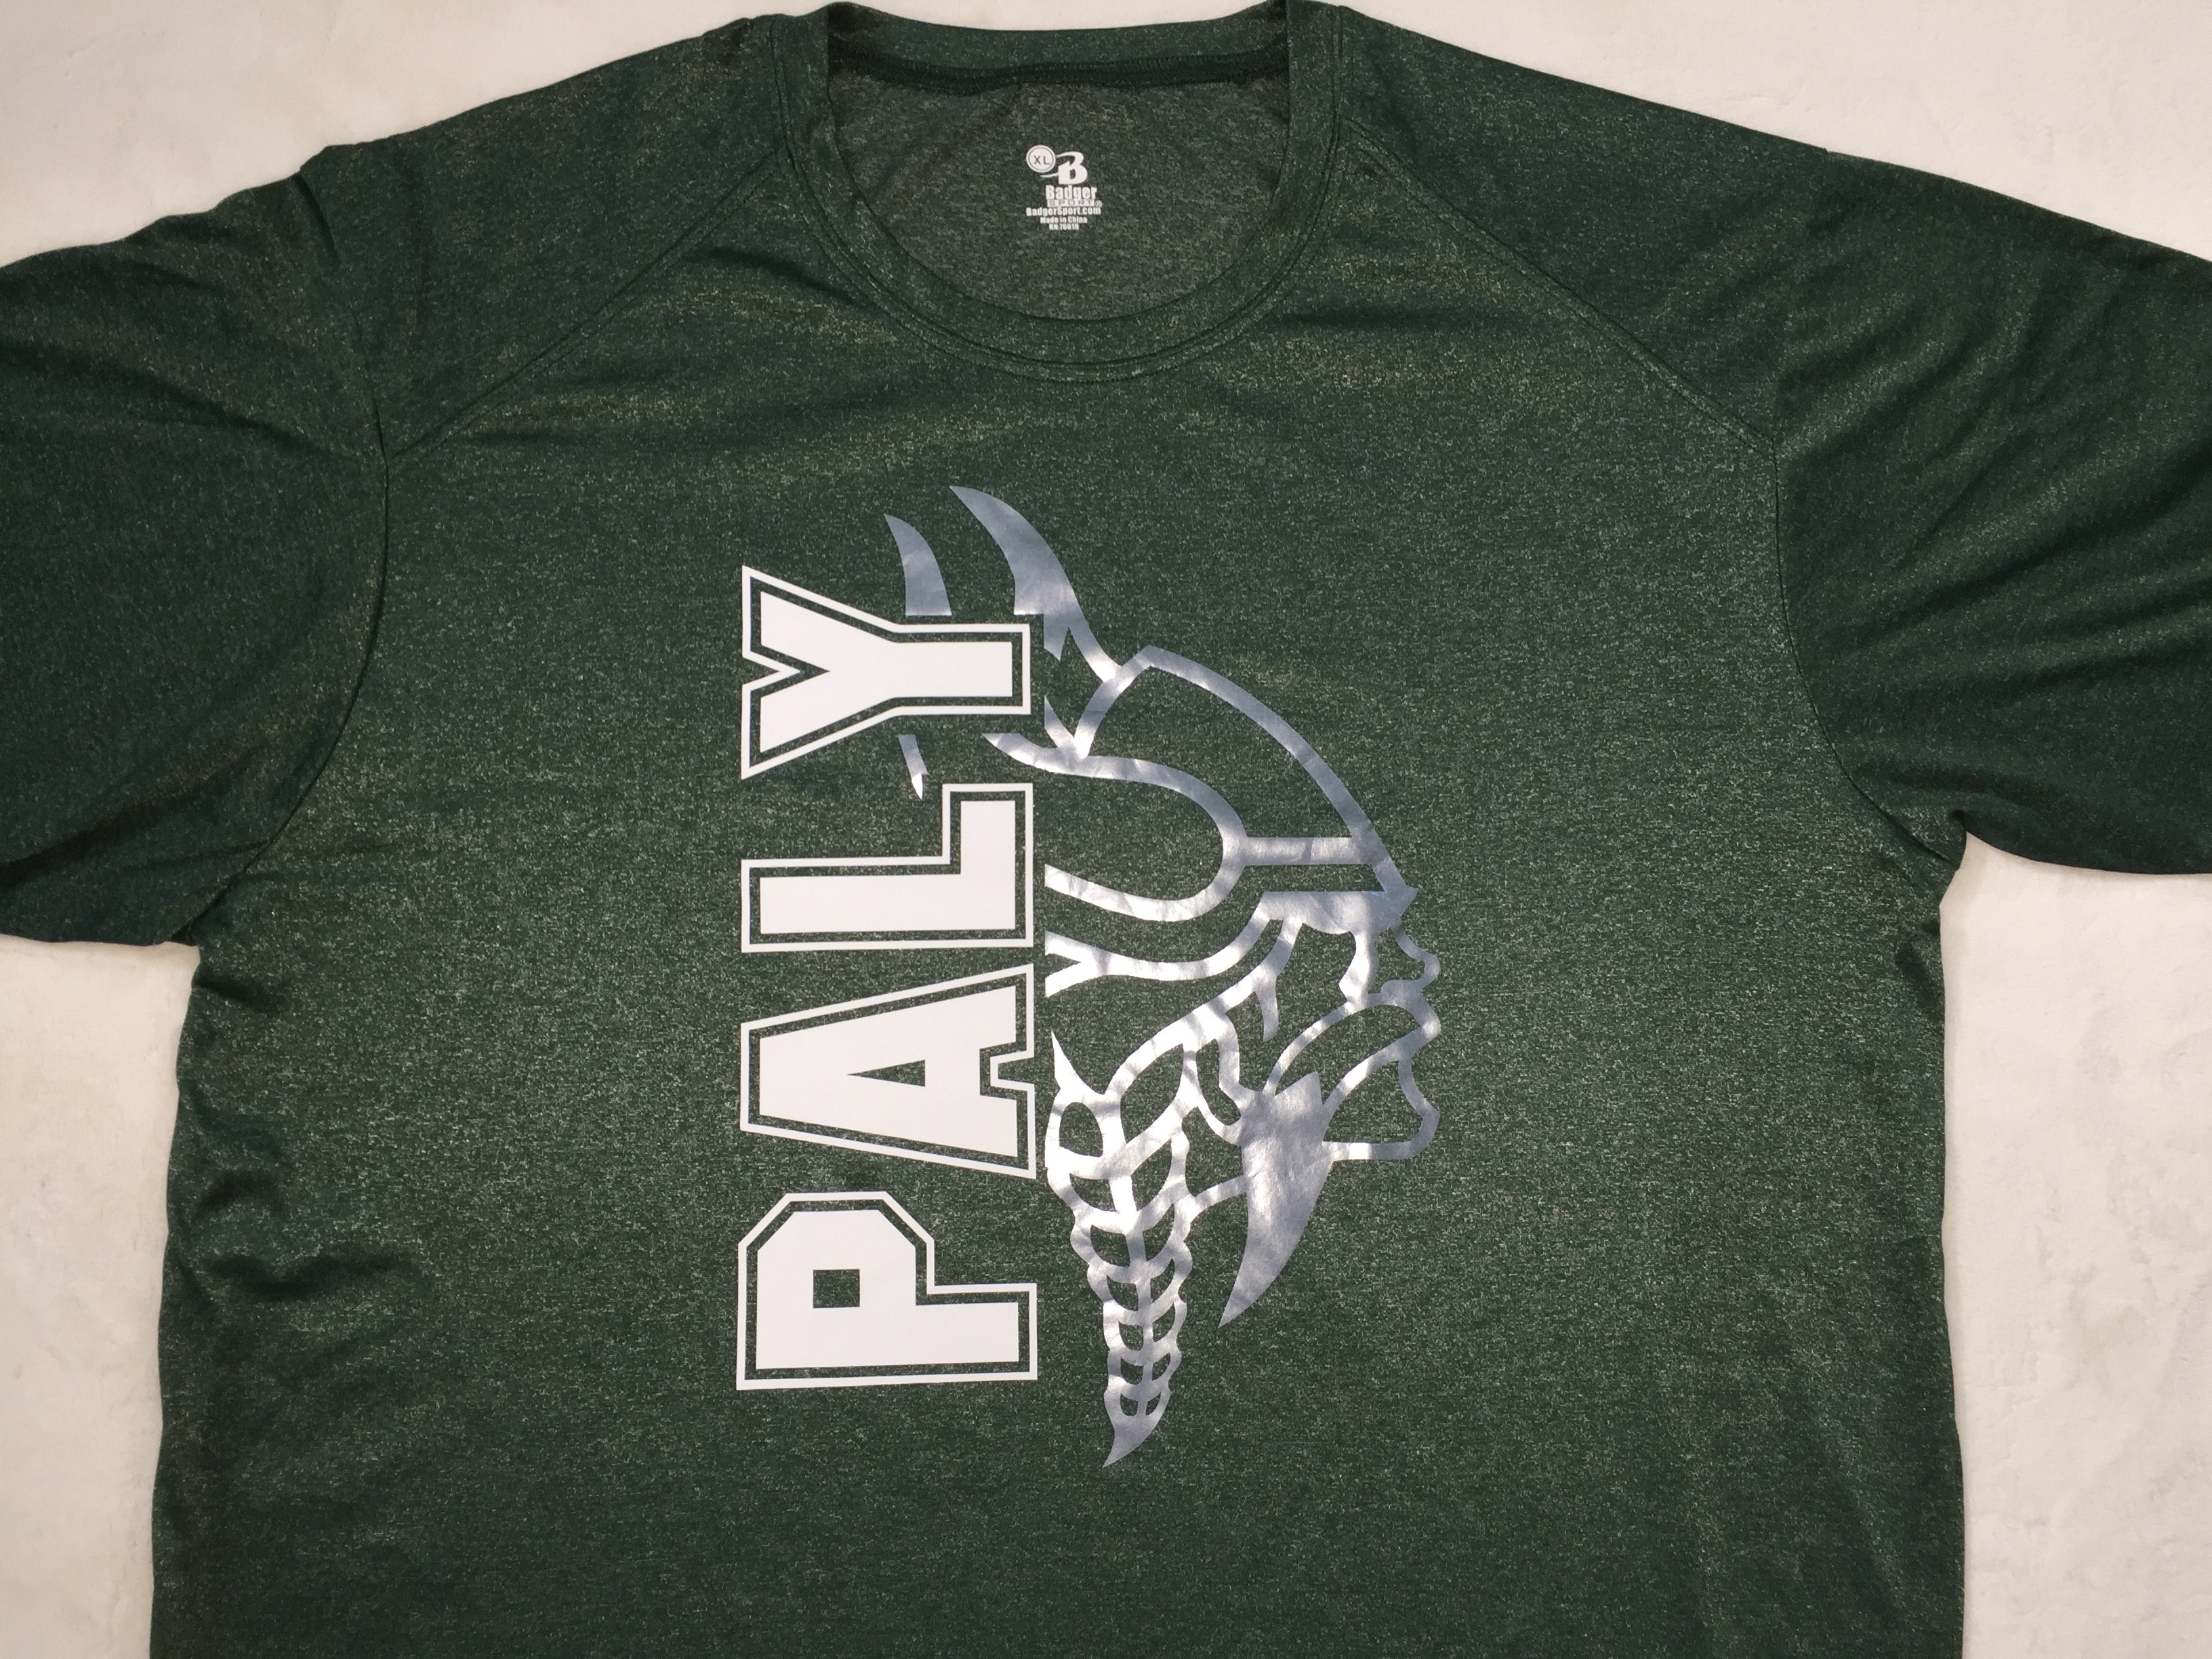 Paly specialty print - 1